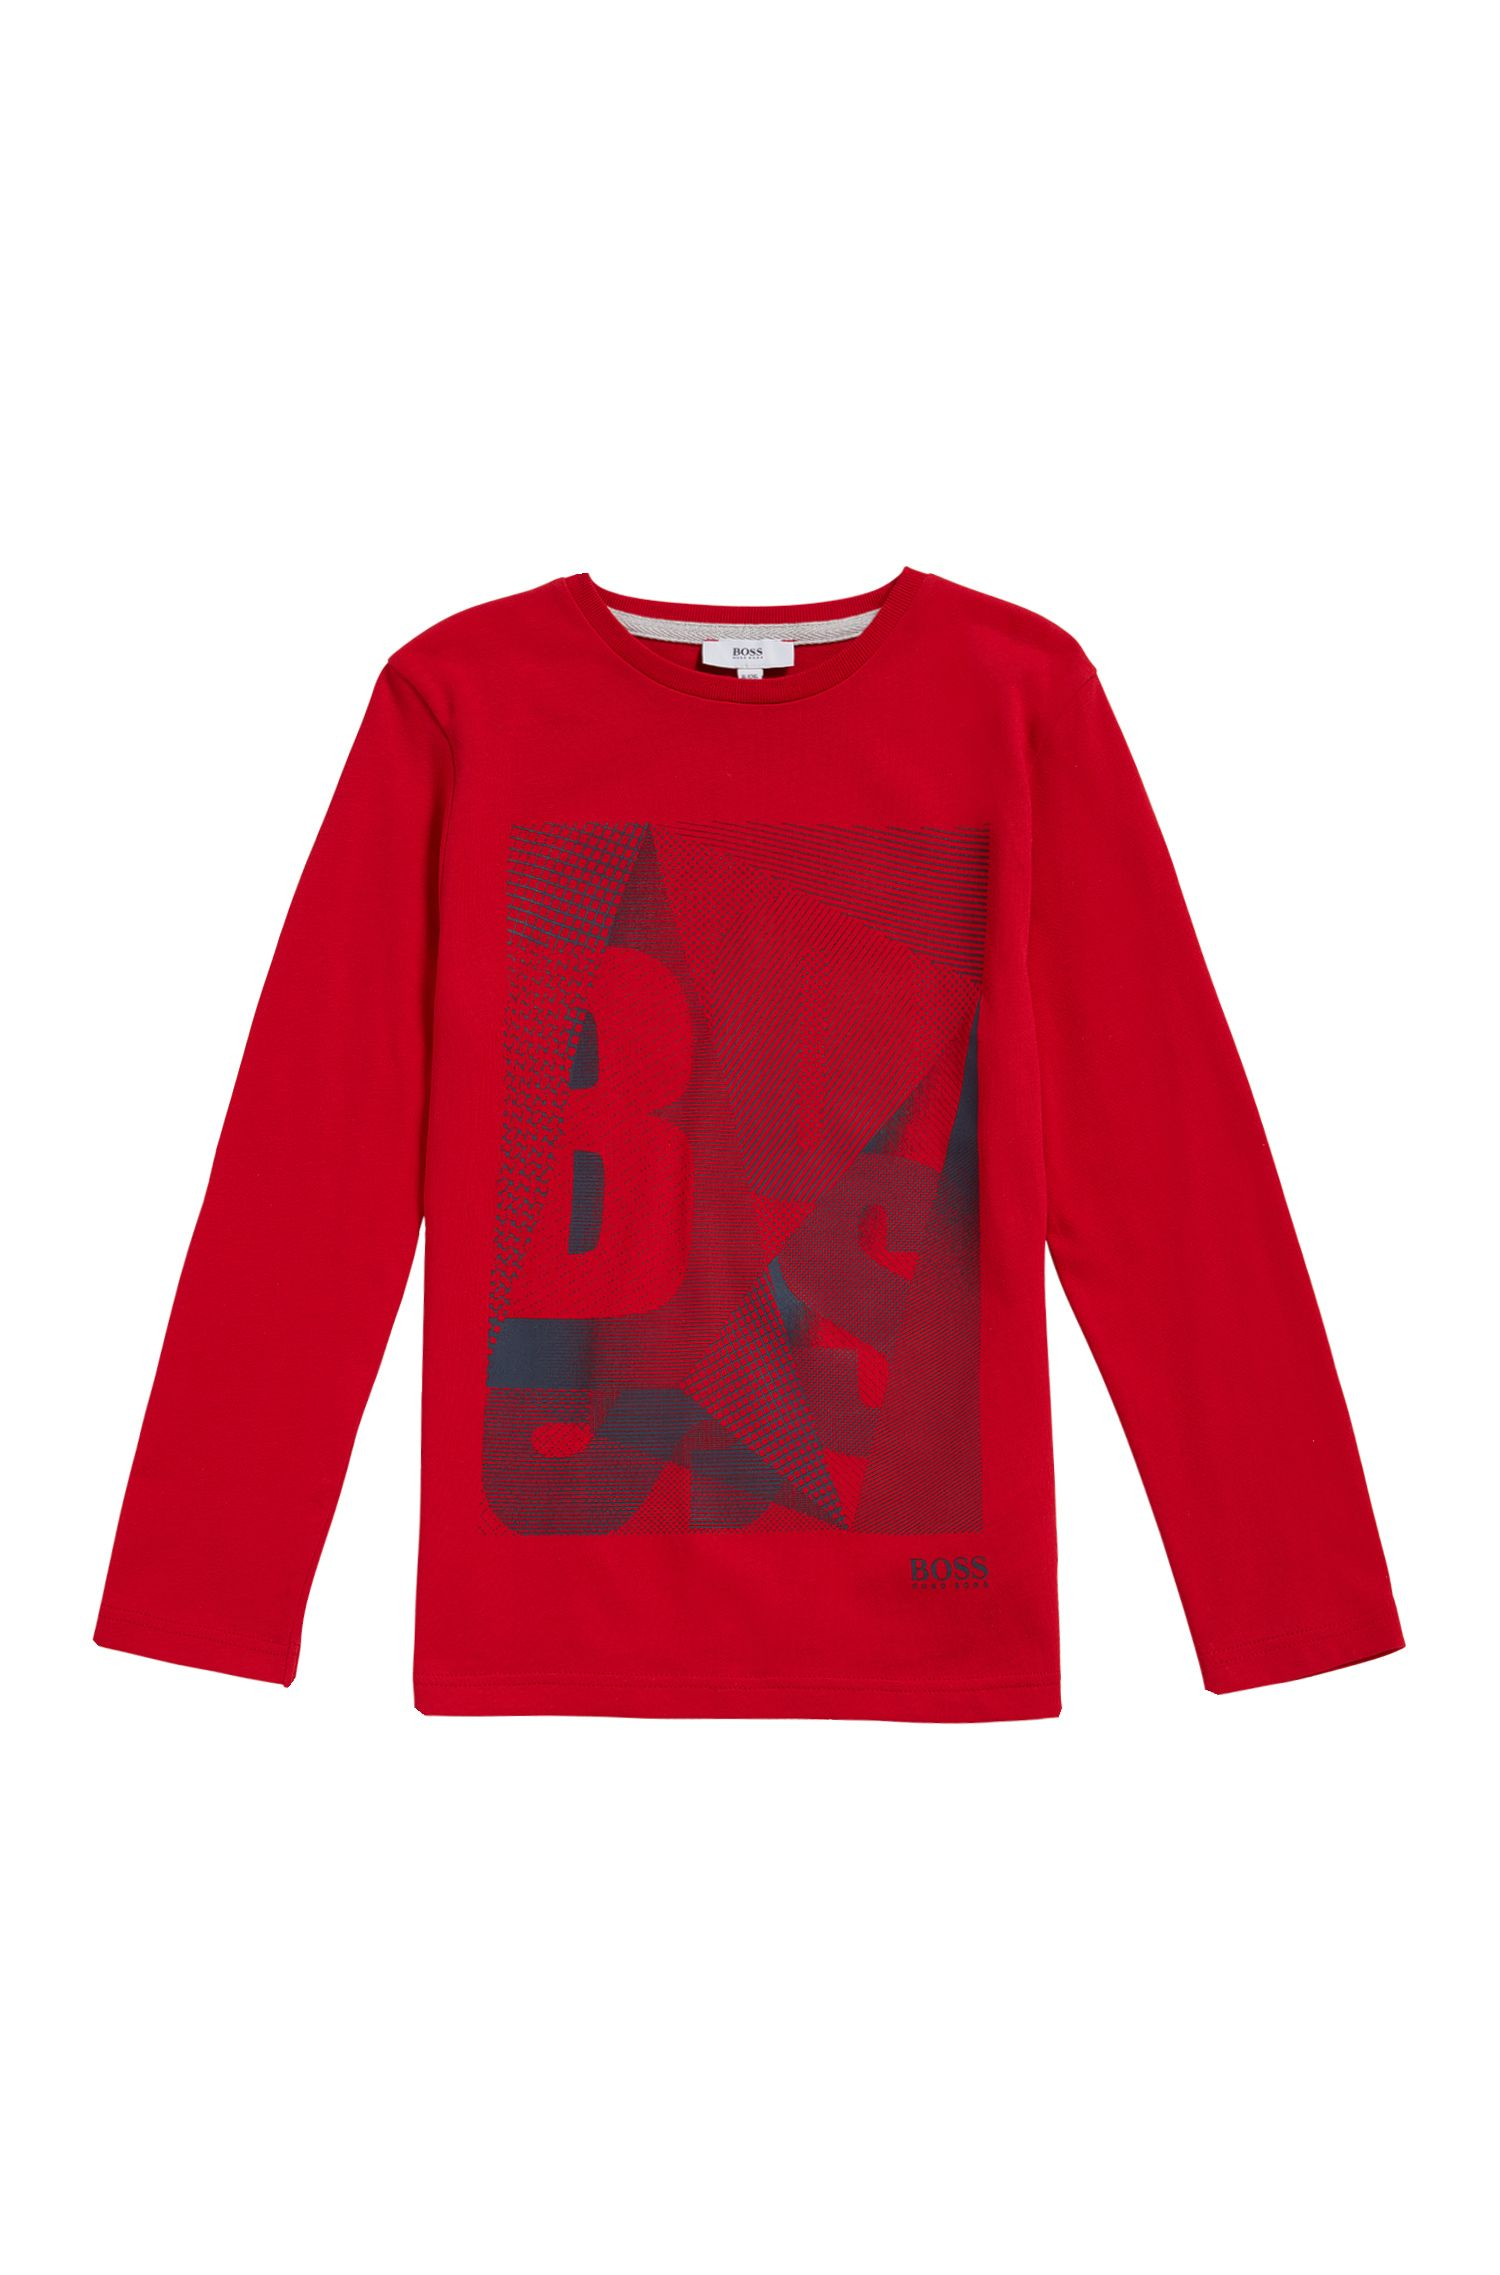 Kids' cotton shirt with logo print: 'J25A06'